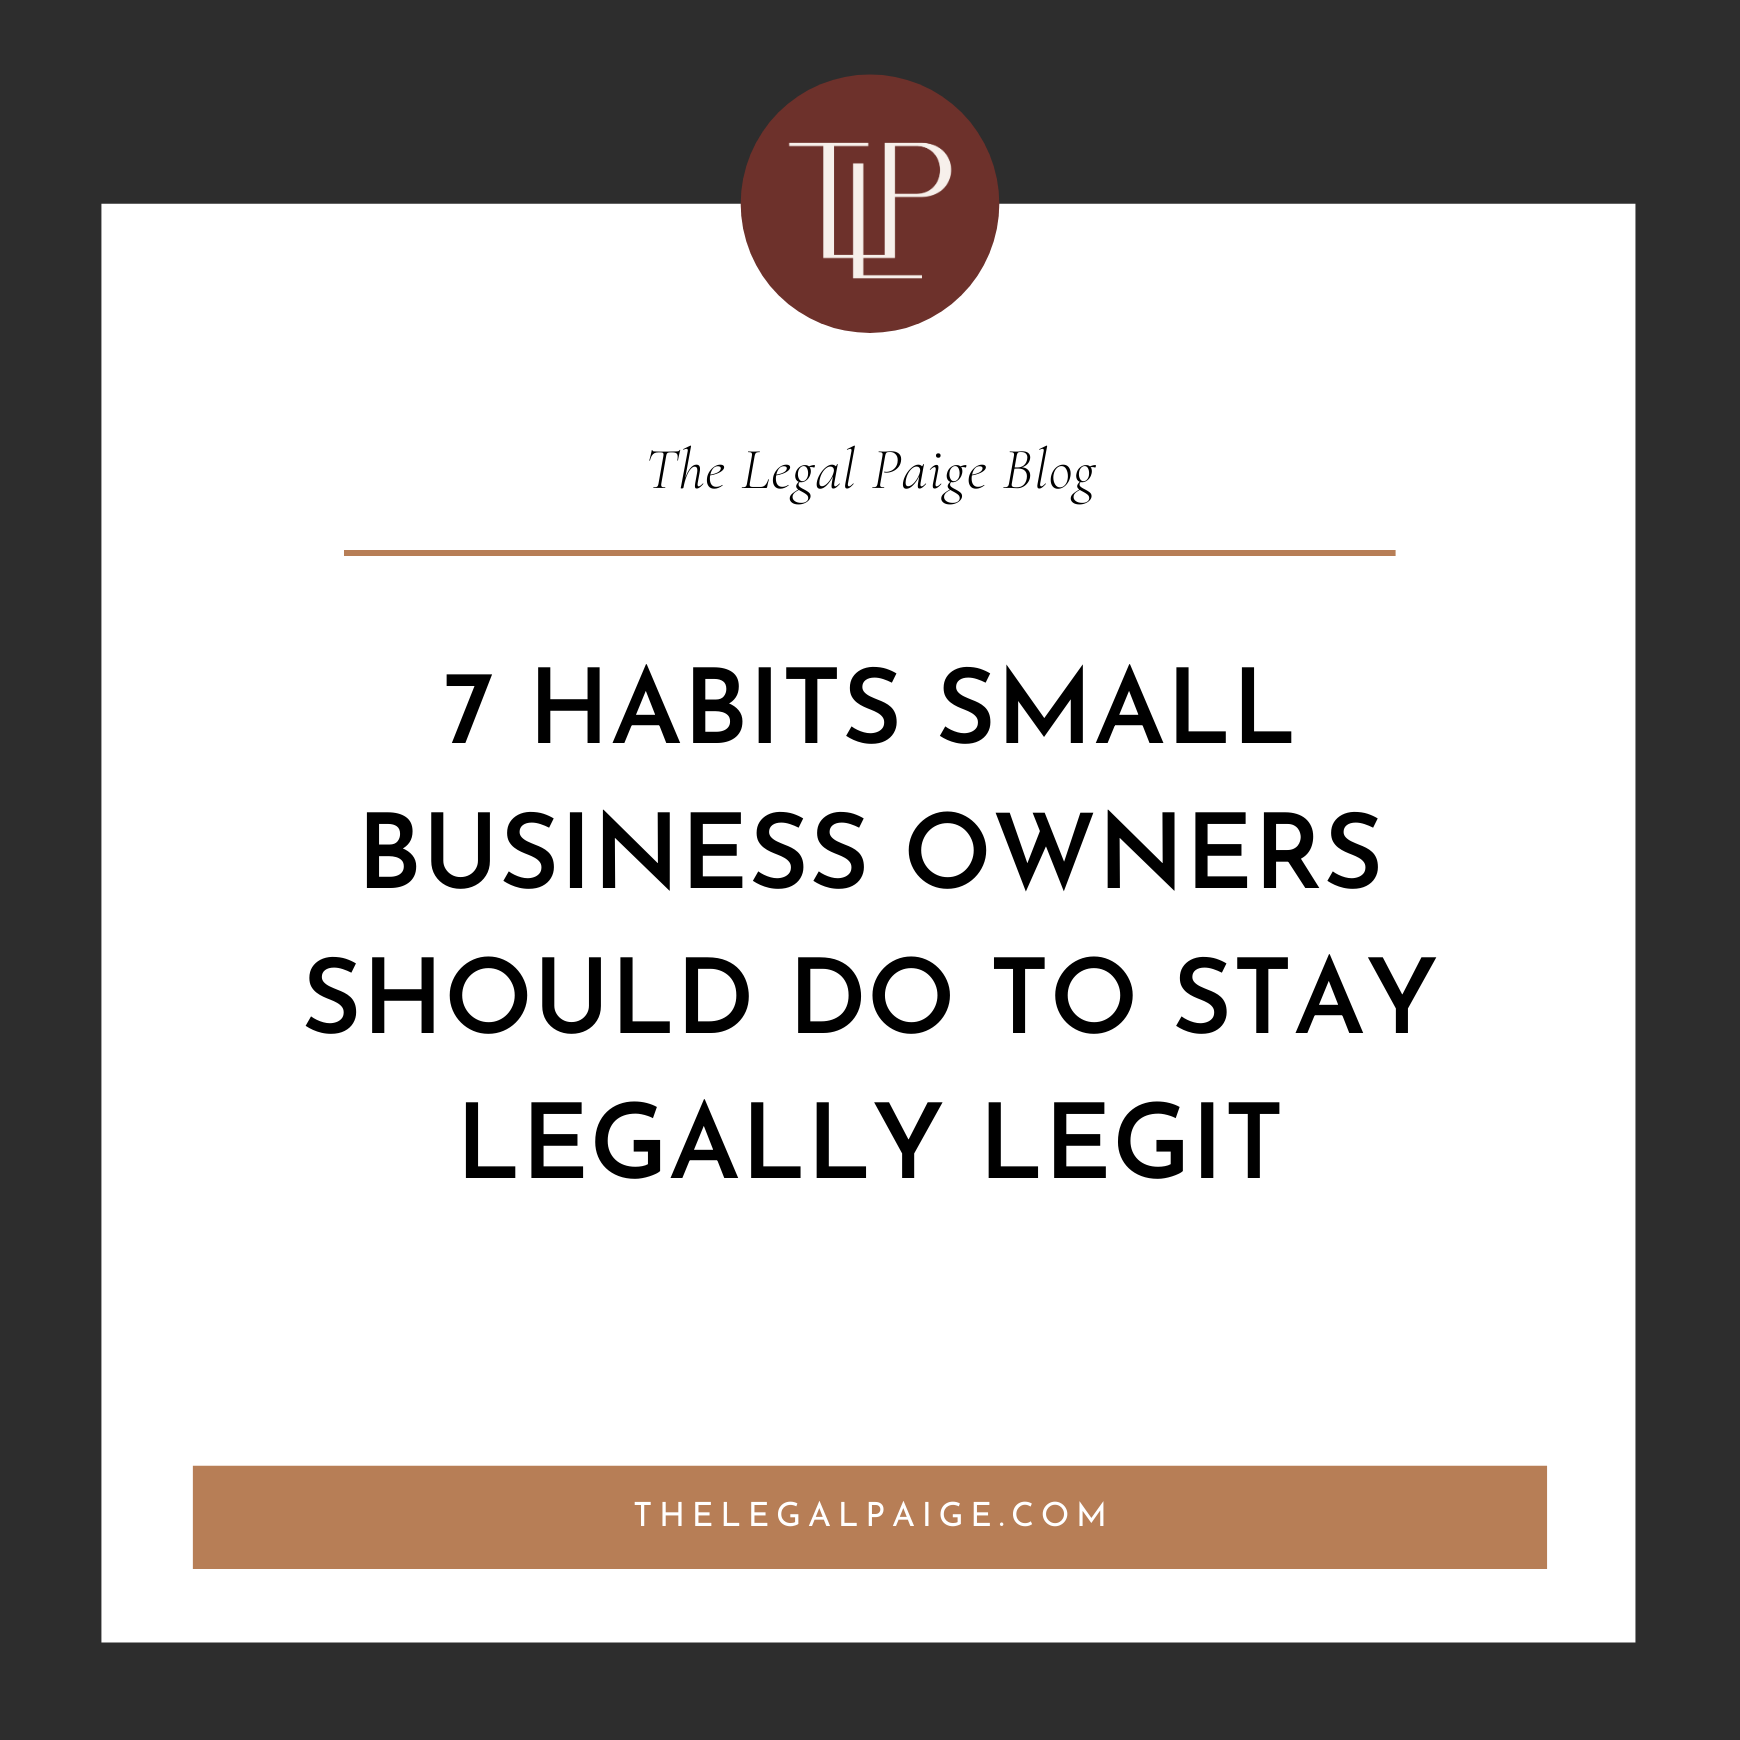 7 Habits Small Business Owners Should Do to Stay Legally Legit